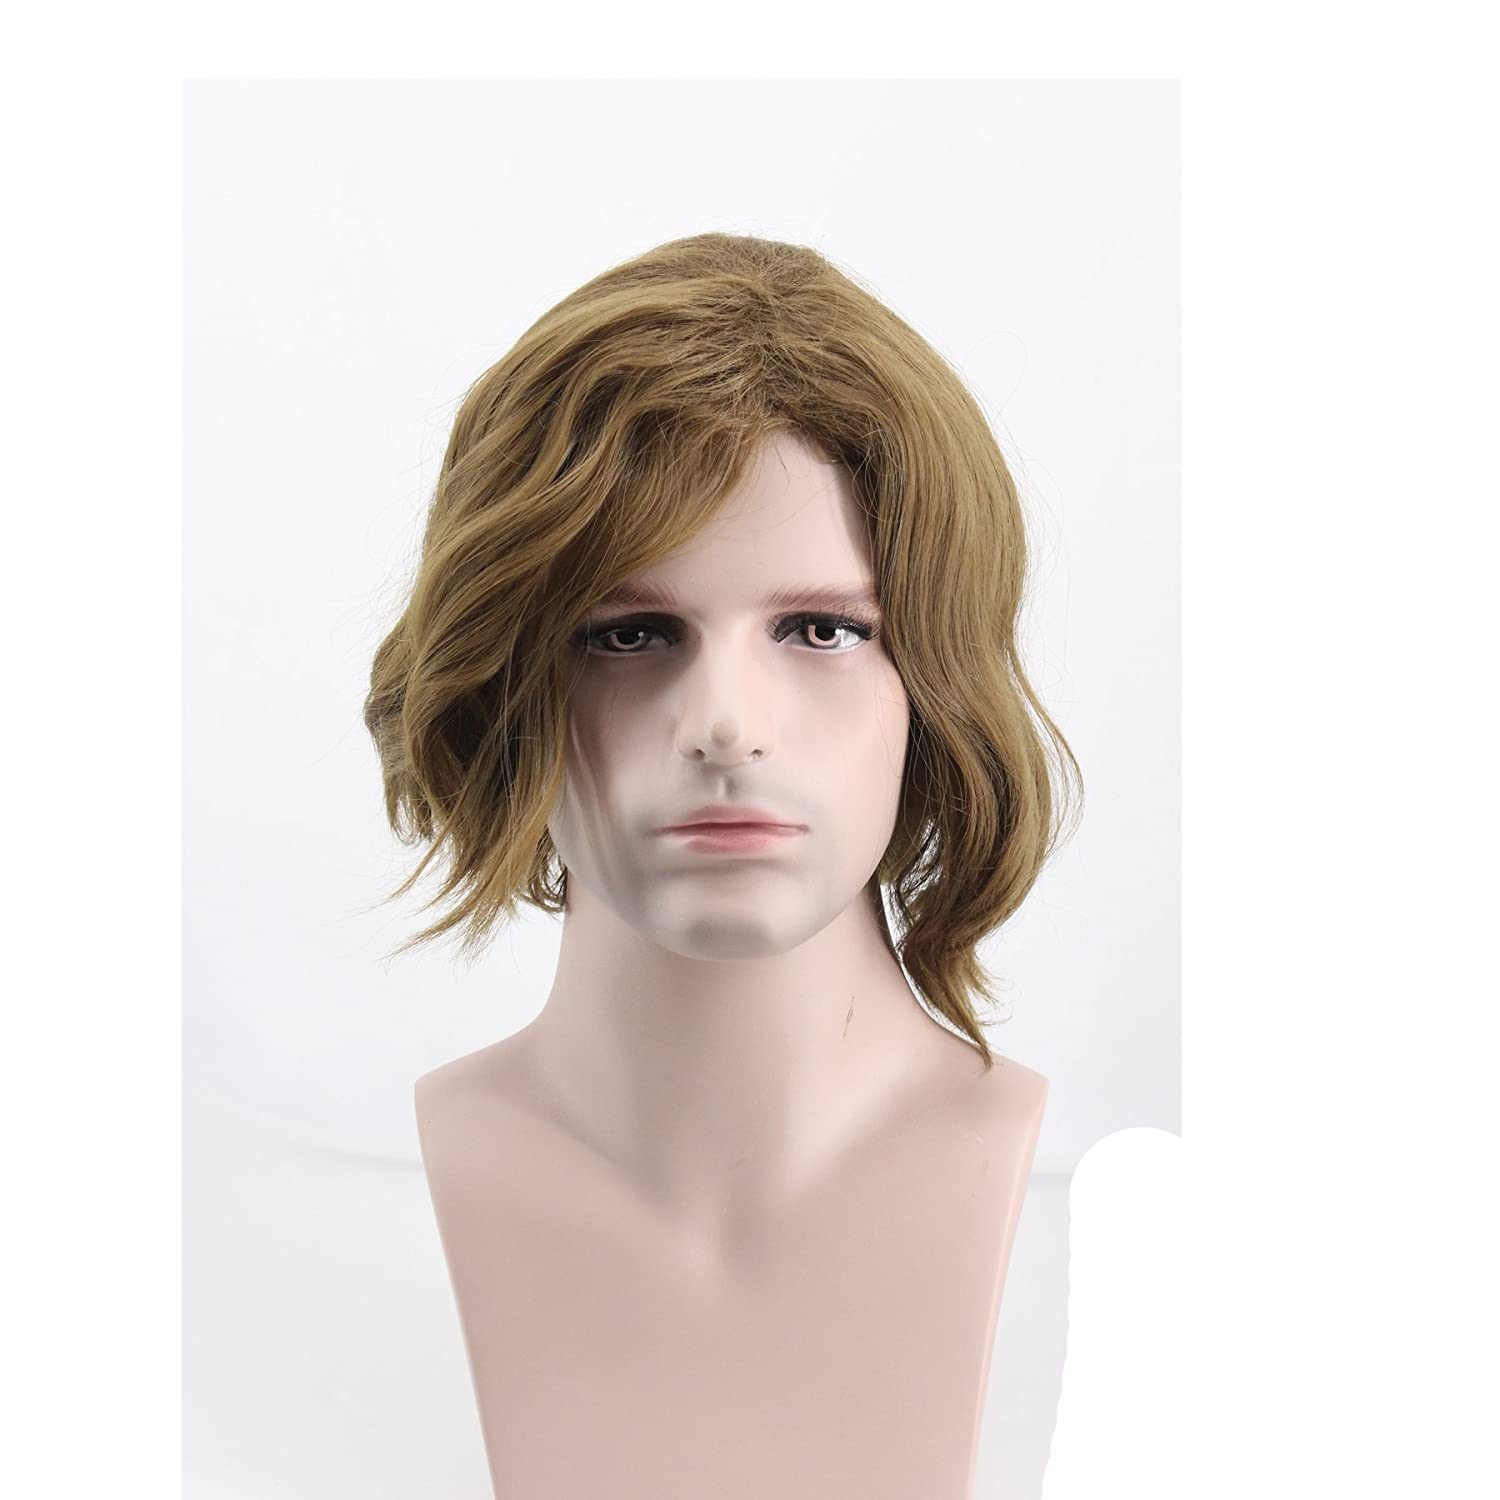 BoMing Man's Short Flax Cosplay Wig for Halloween Costume Wig